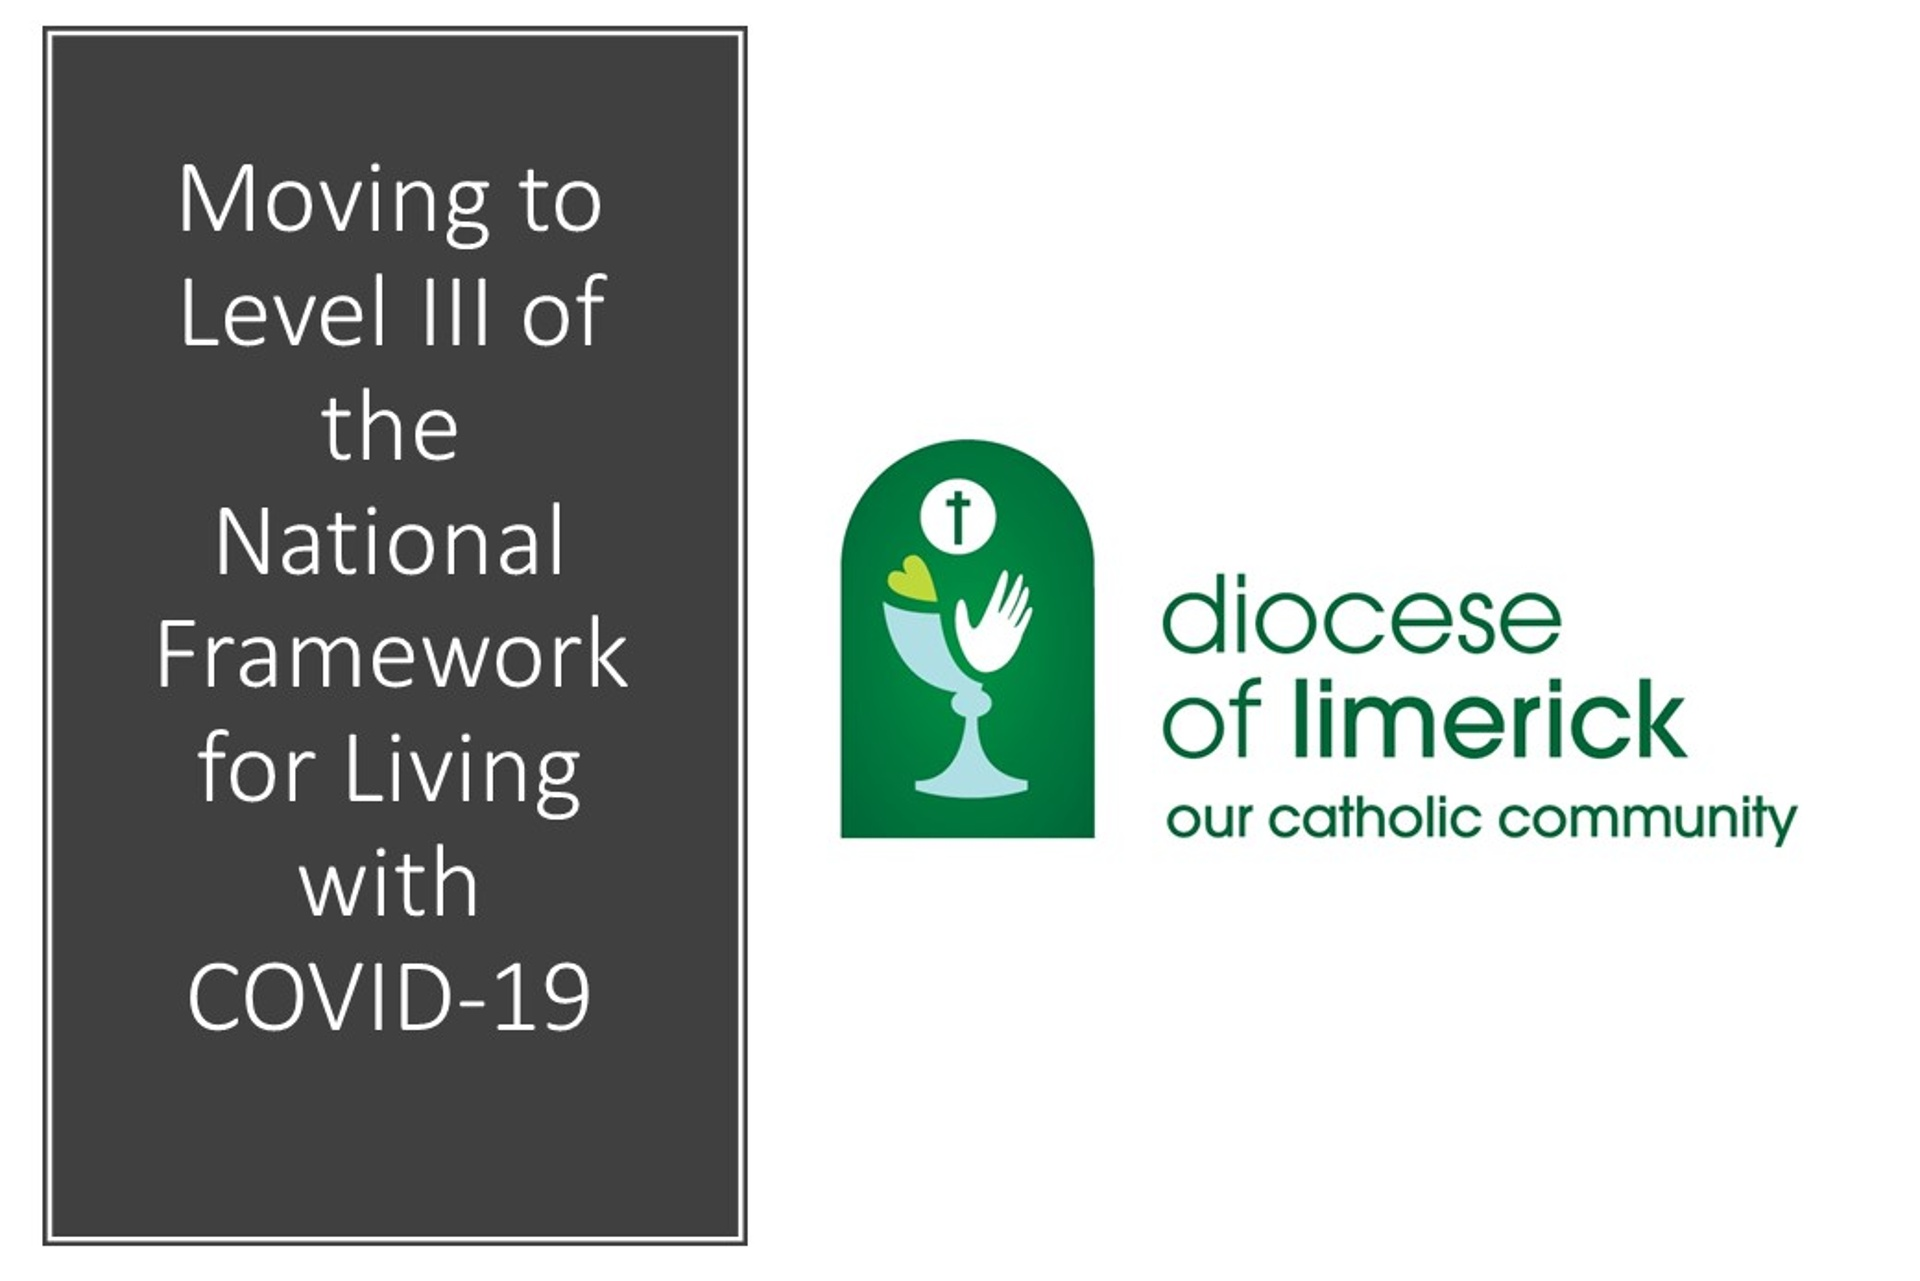 Moving to Level III of the National Framework for living with COVID-19